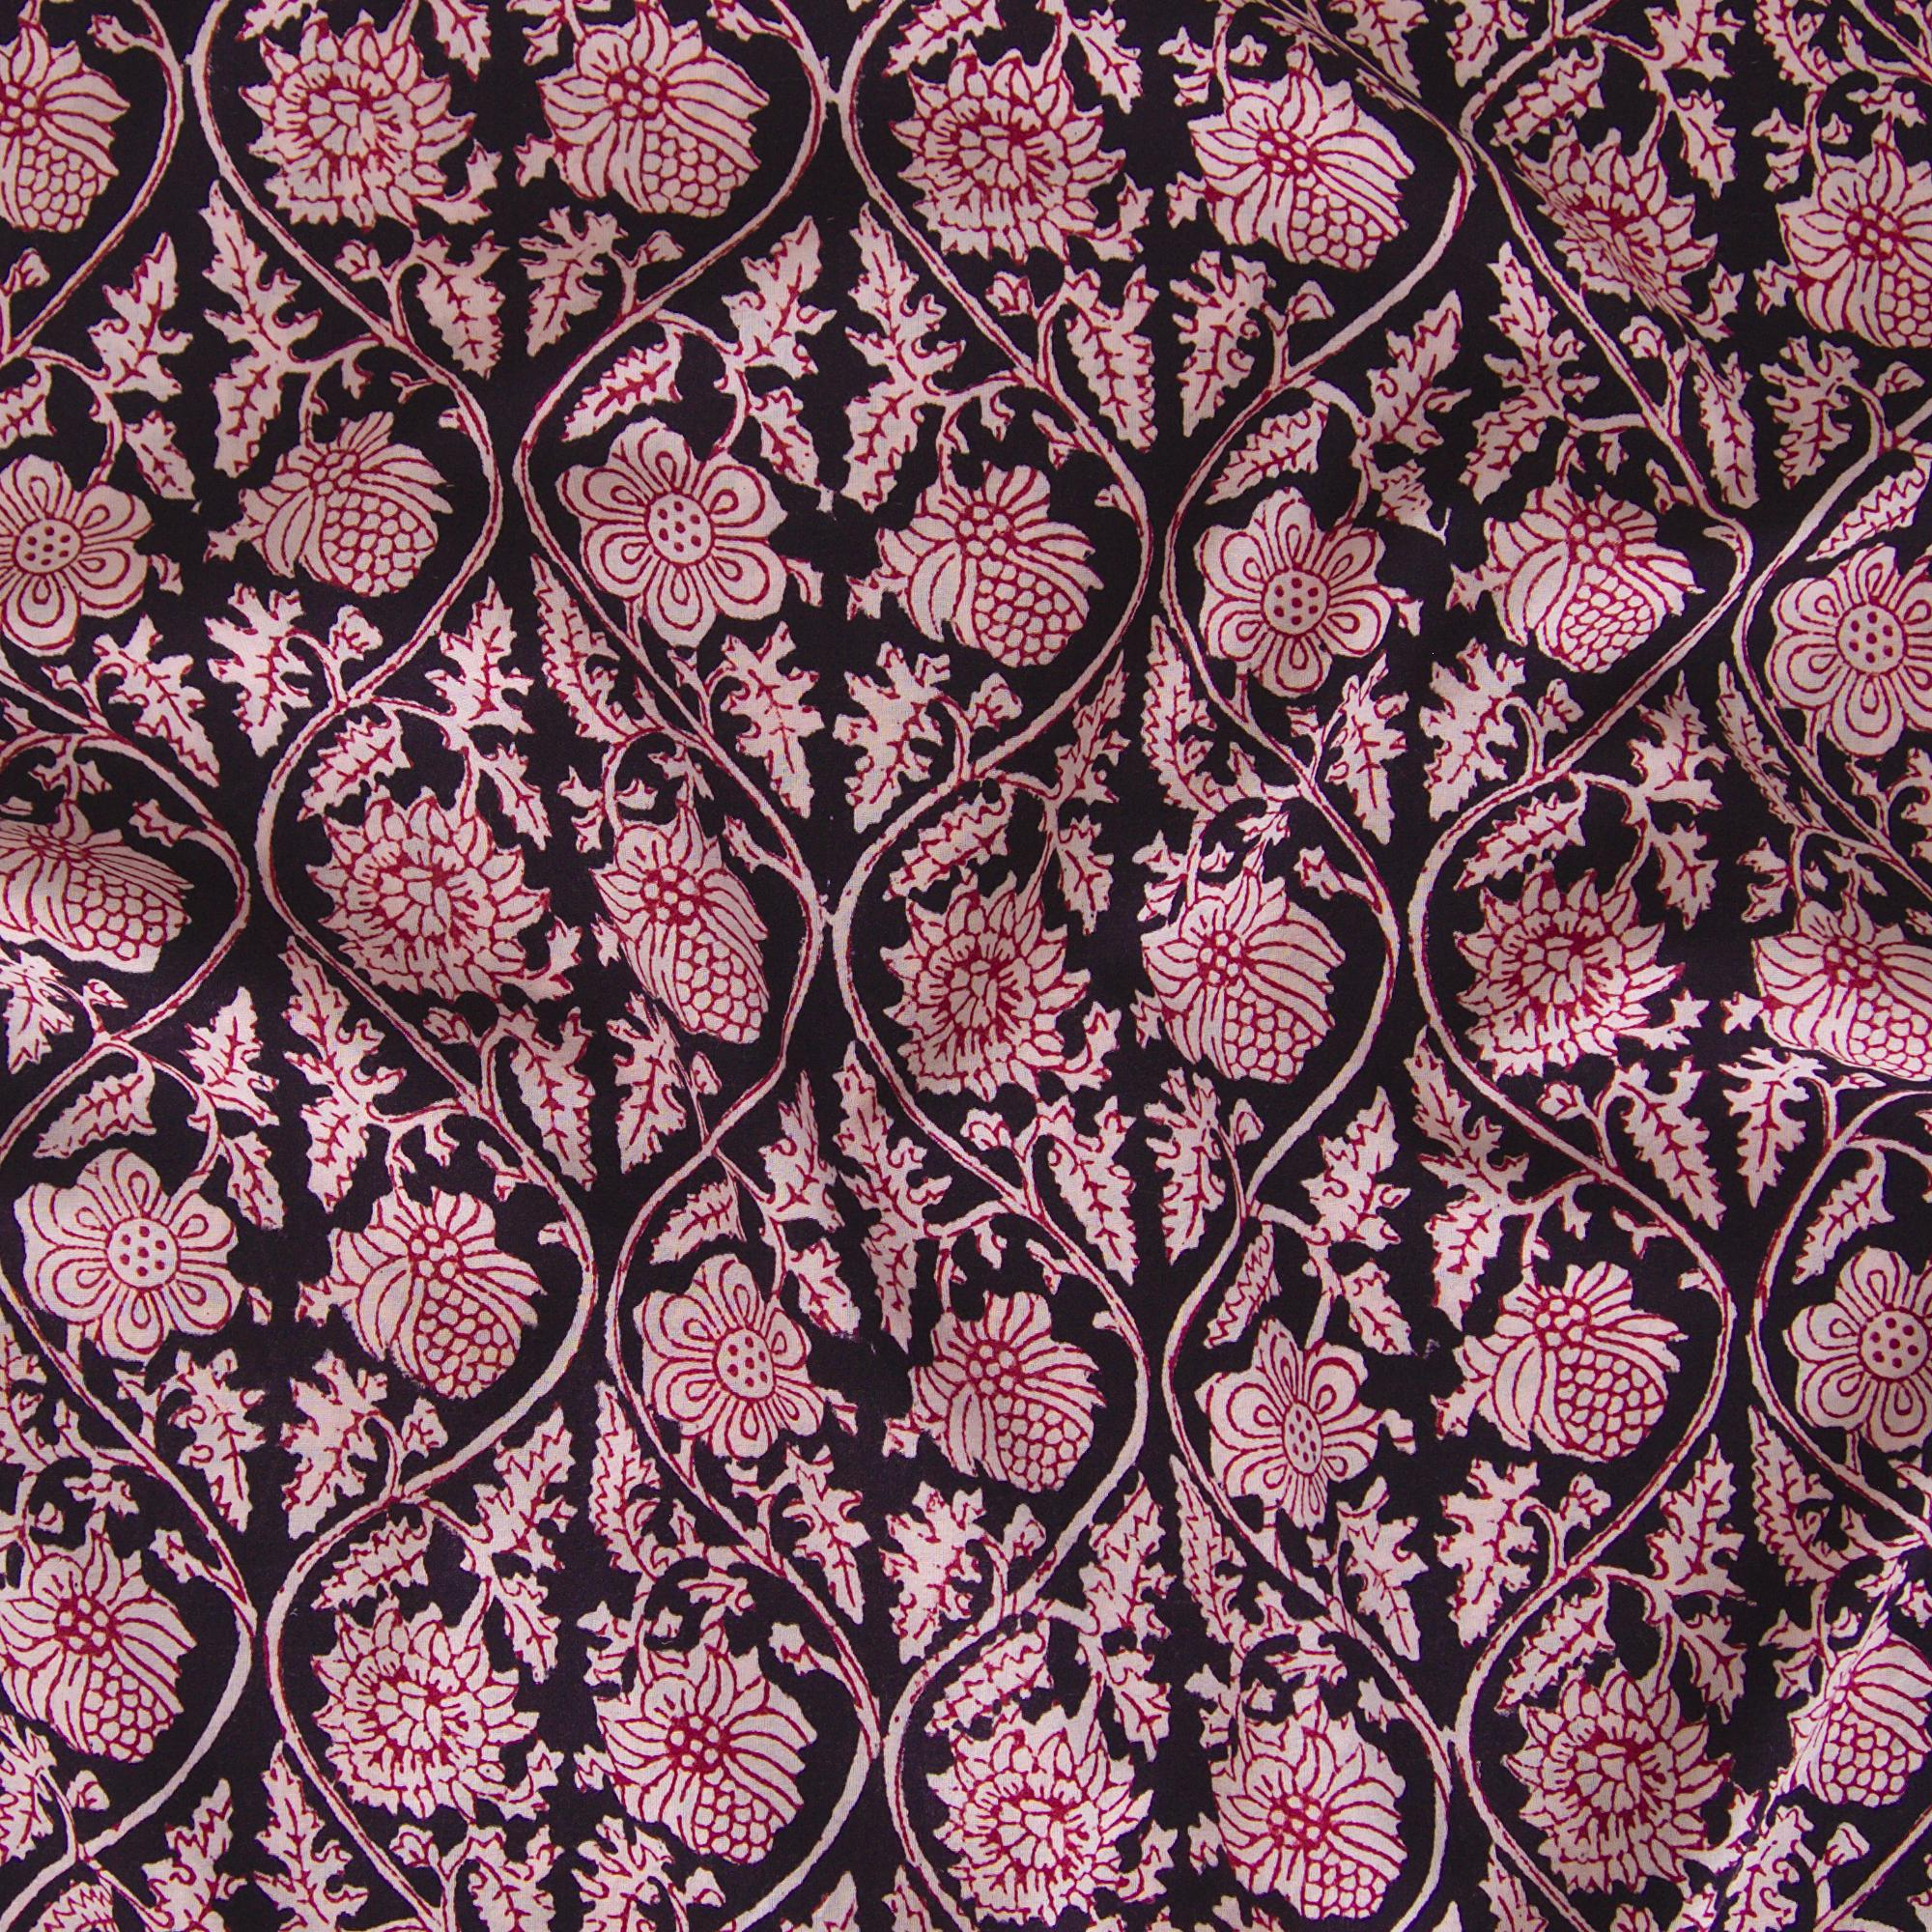 100% Block-Printed Cotton Fabric From India - Vinea Design - Iron Rust Black & Alizarin Red Dyes - Contrast - Live